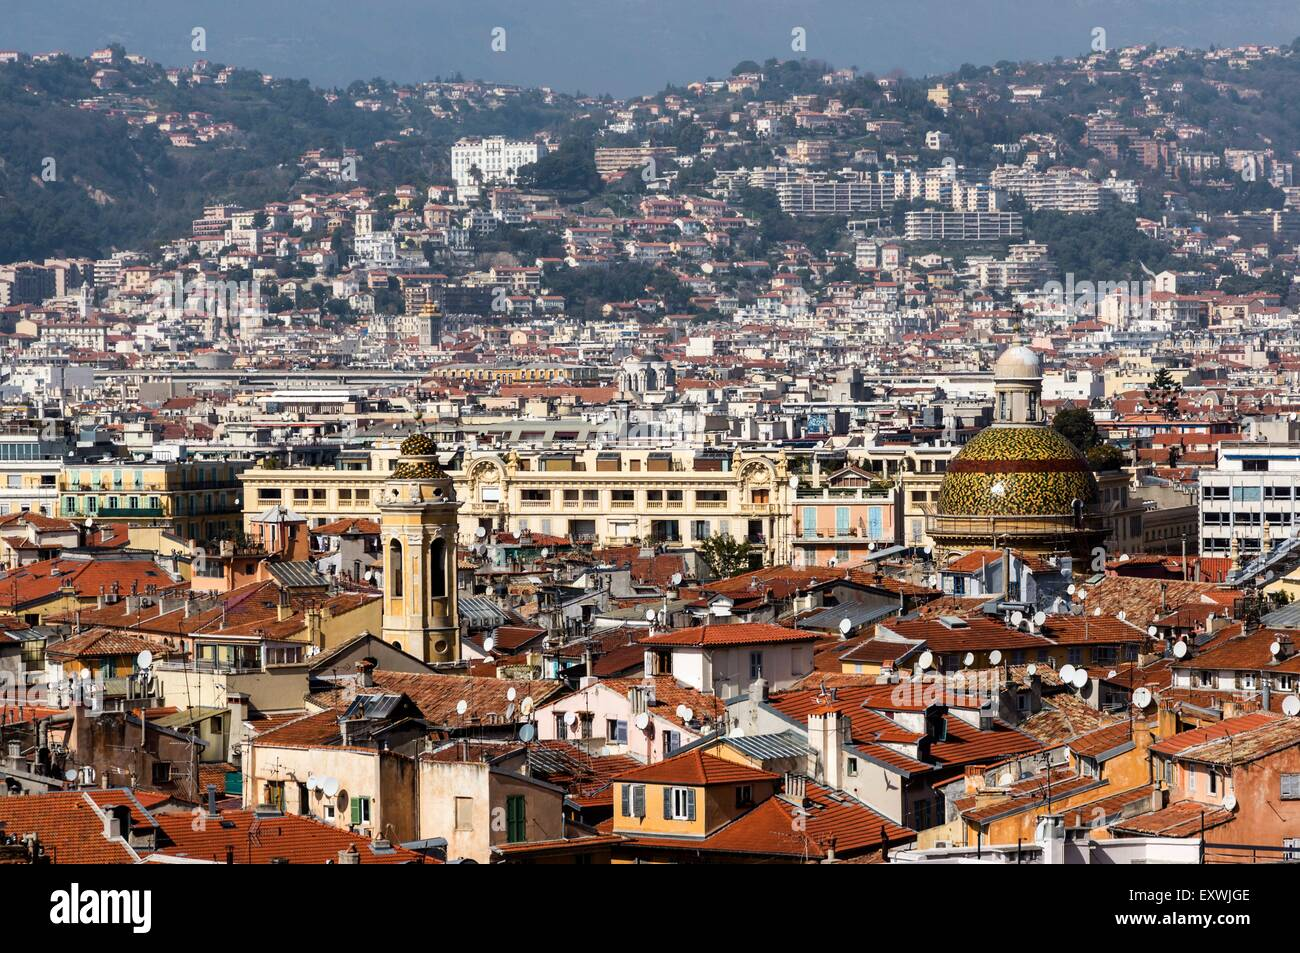 Old city center of Nice, France Stock Photo, Royalty Free ...